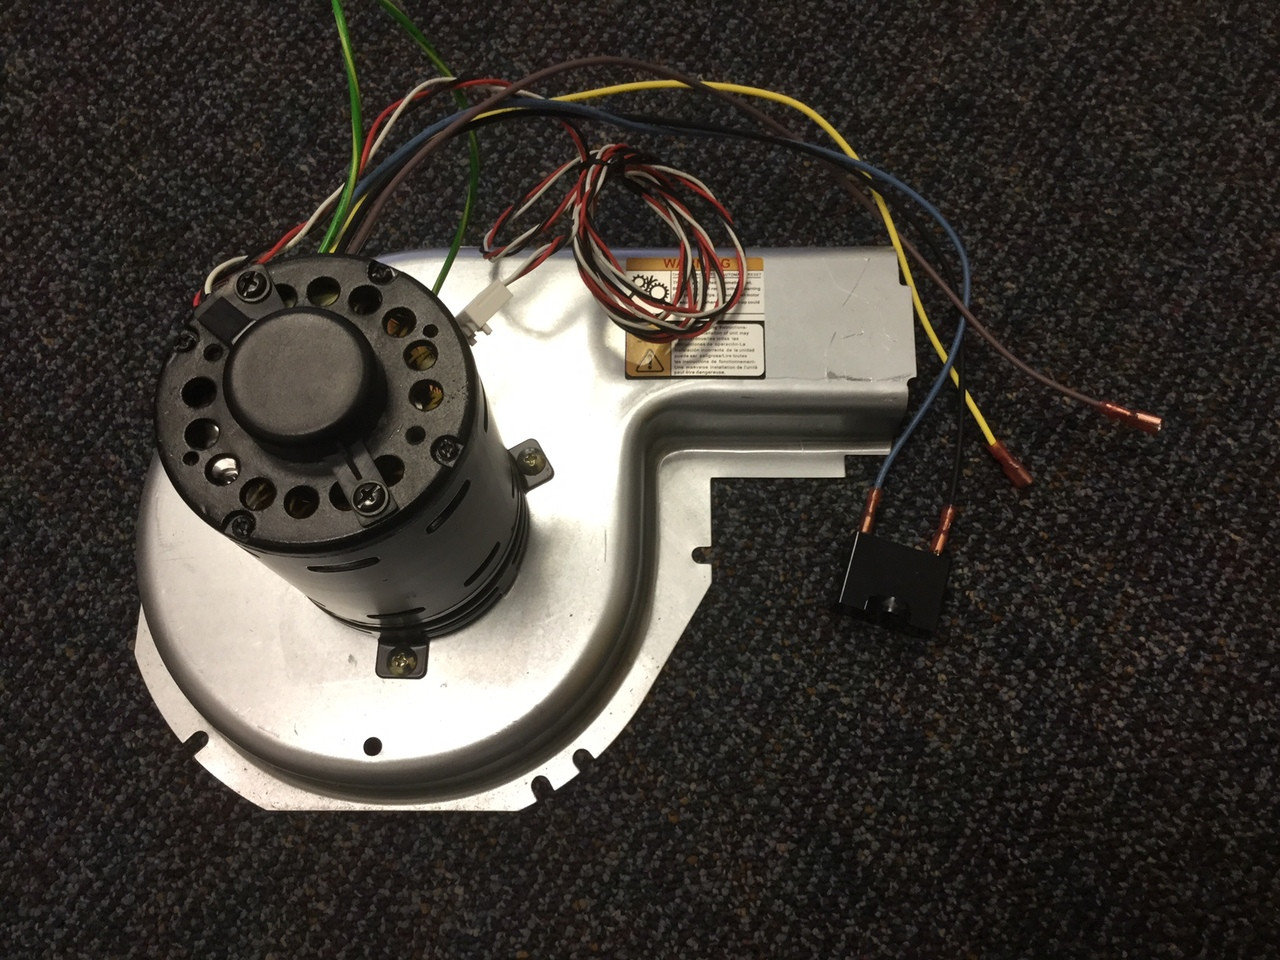 Carrier Hc30ck234 Hc30gb232 48gs400649 48gs400106 Blower Draft Bryant Wiring Devices Image 1